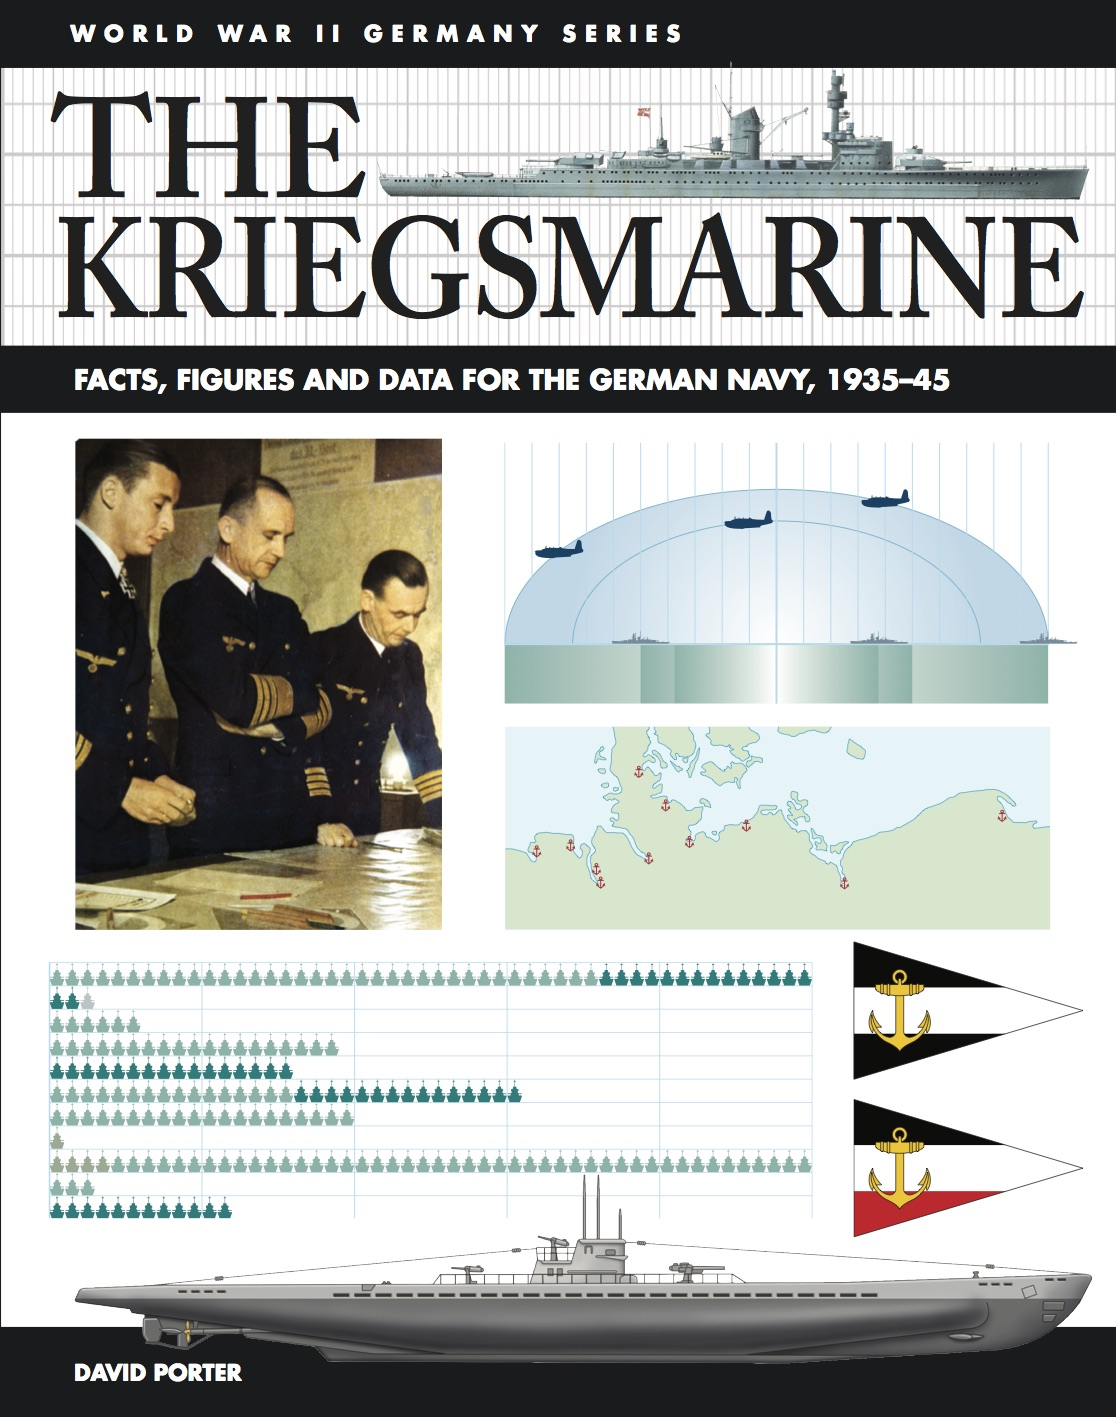 WWII Germany Series: The Kriegsmarine